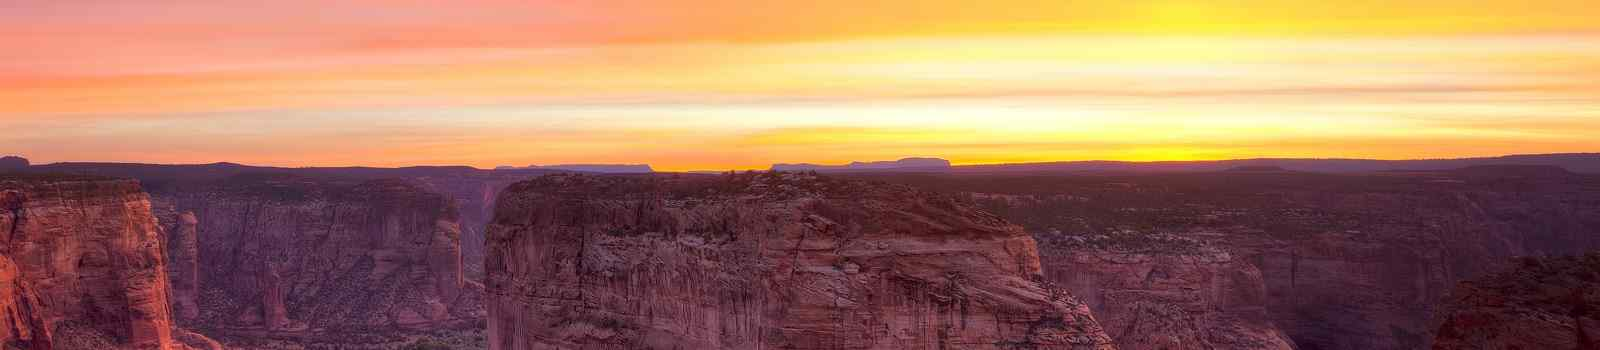 BESTE-NORDAMERIKA -Sunrise in Canyon DeChelly shutterstock 350114609